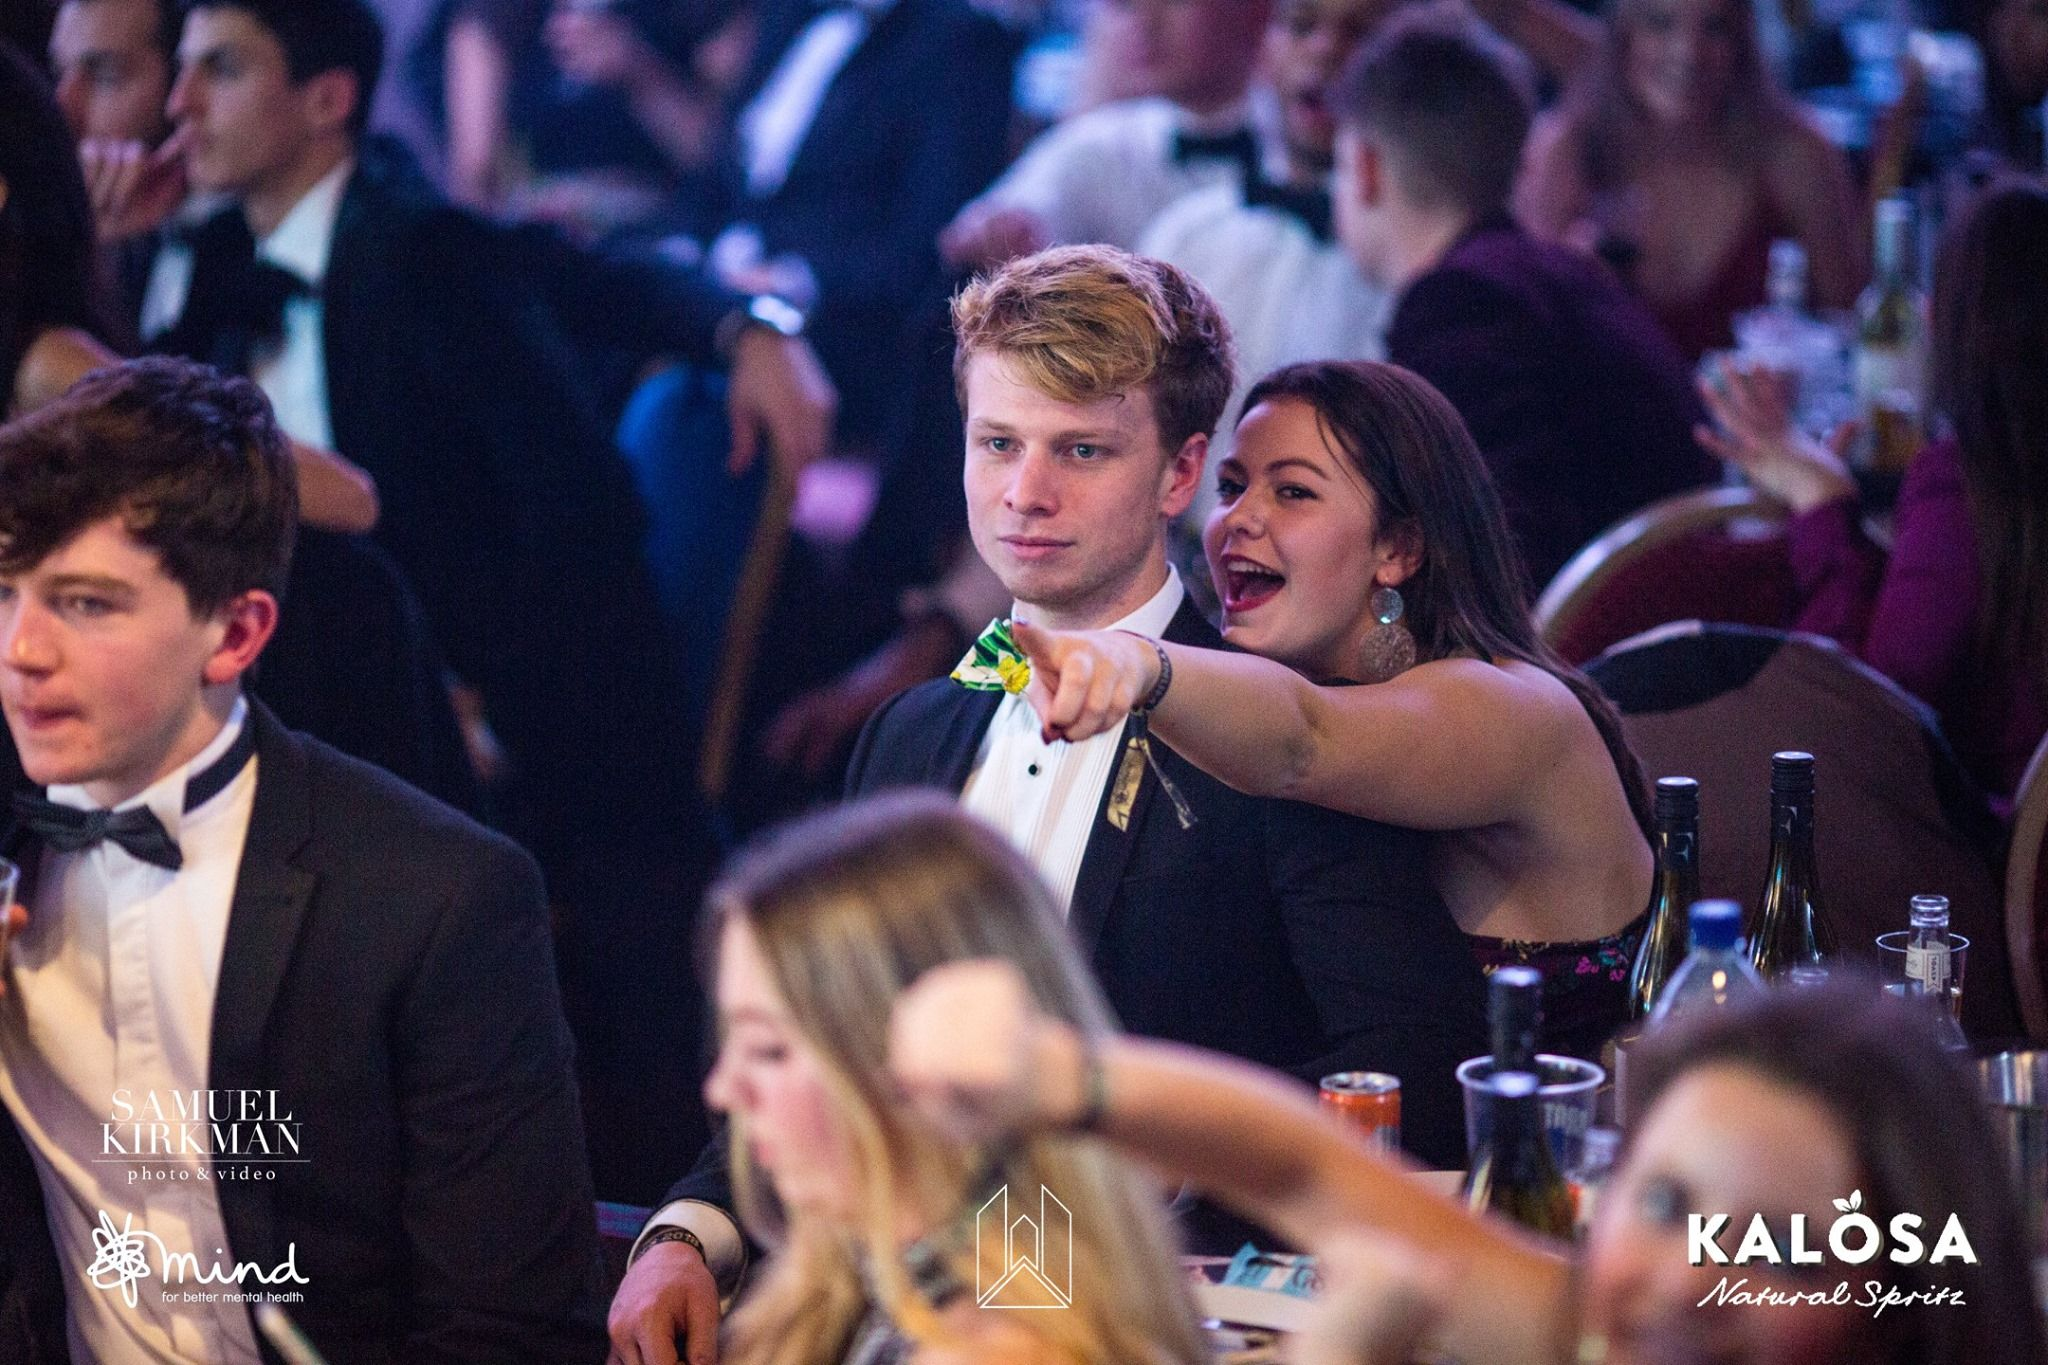 Image may contain: Night Life, Party, Night Club, Coat, Suit, Overcoat, Clothing, Apparel, Club, Bar Counter, Audience, Crowd, Pub, Person, Human